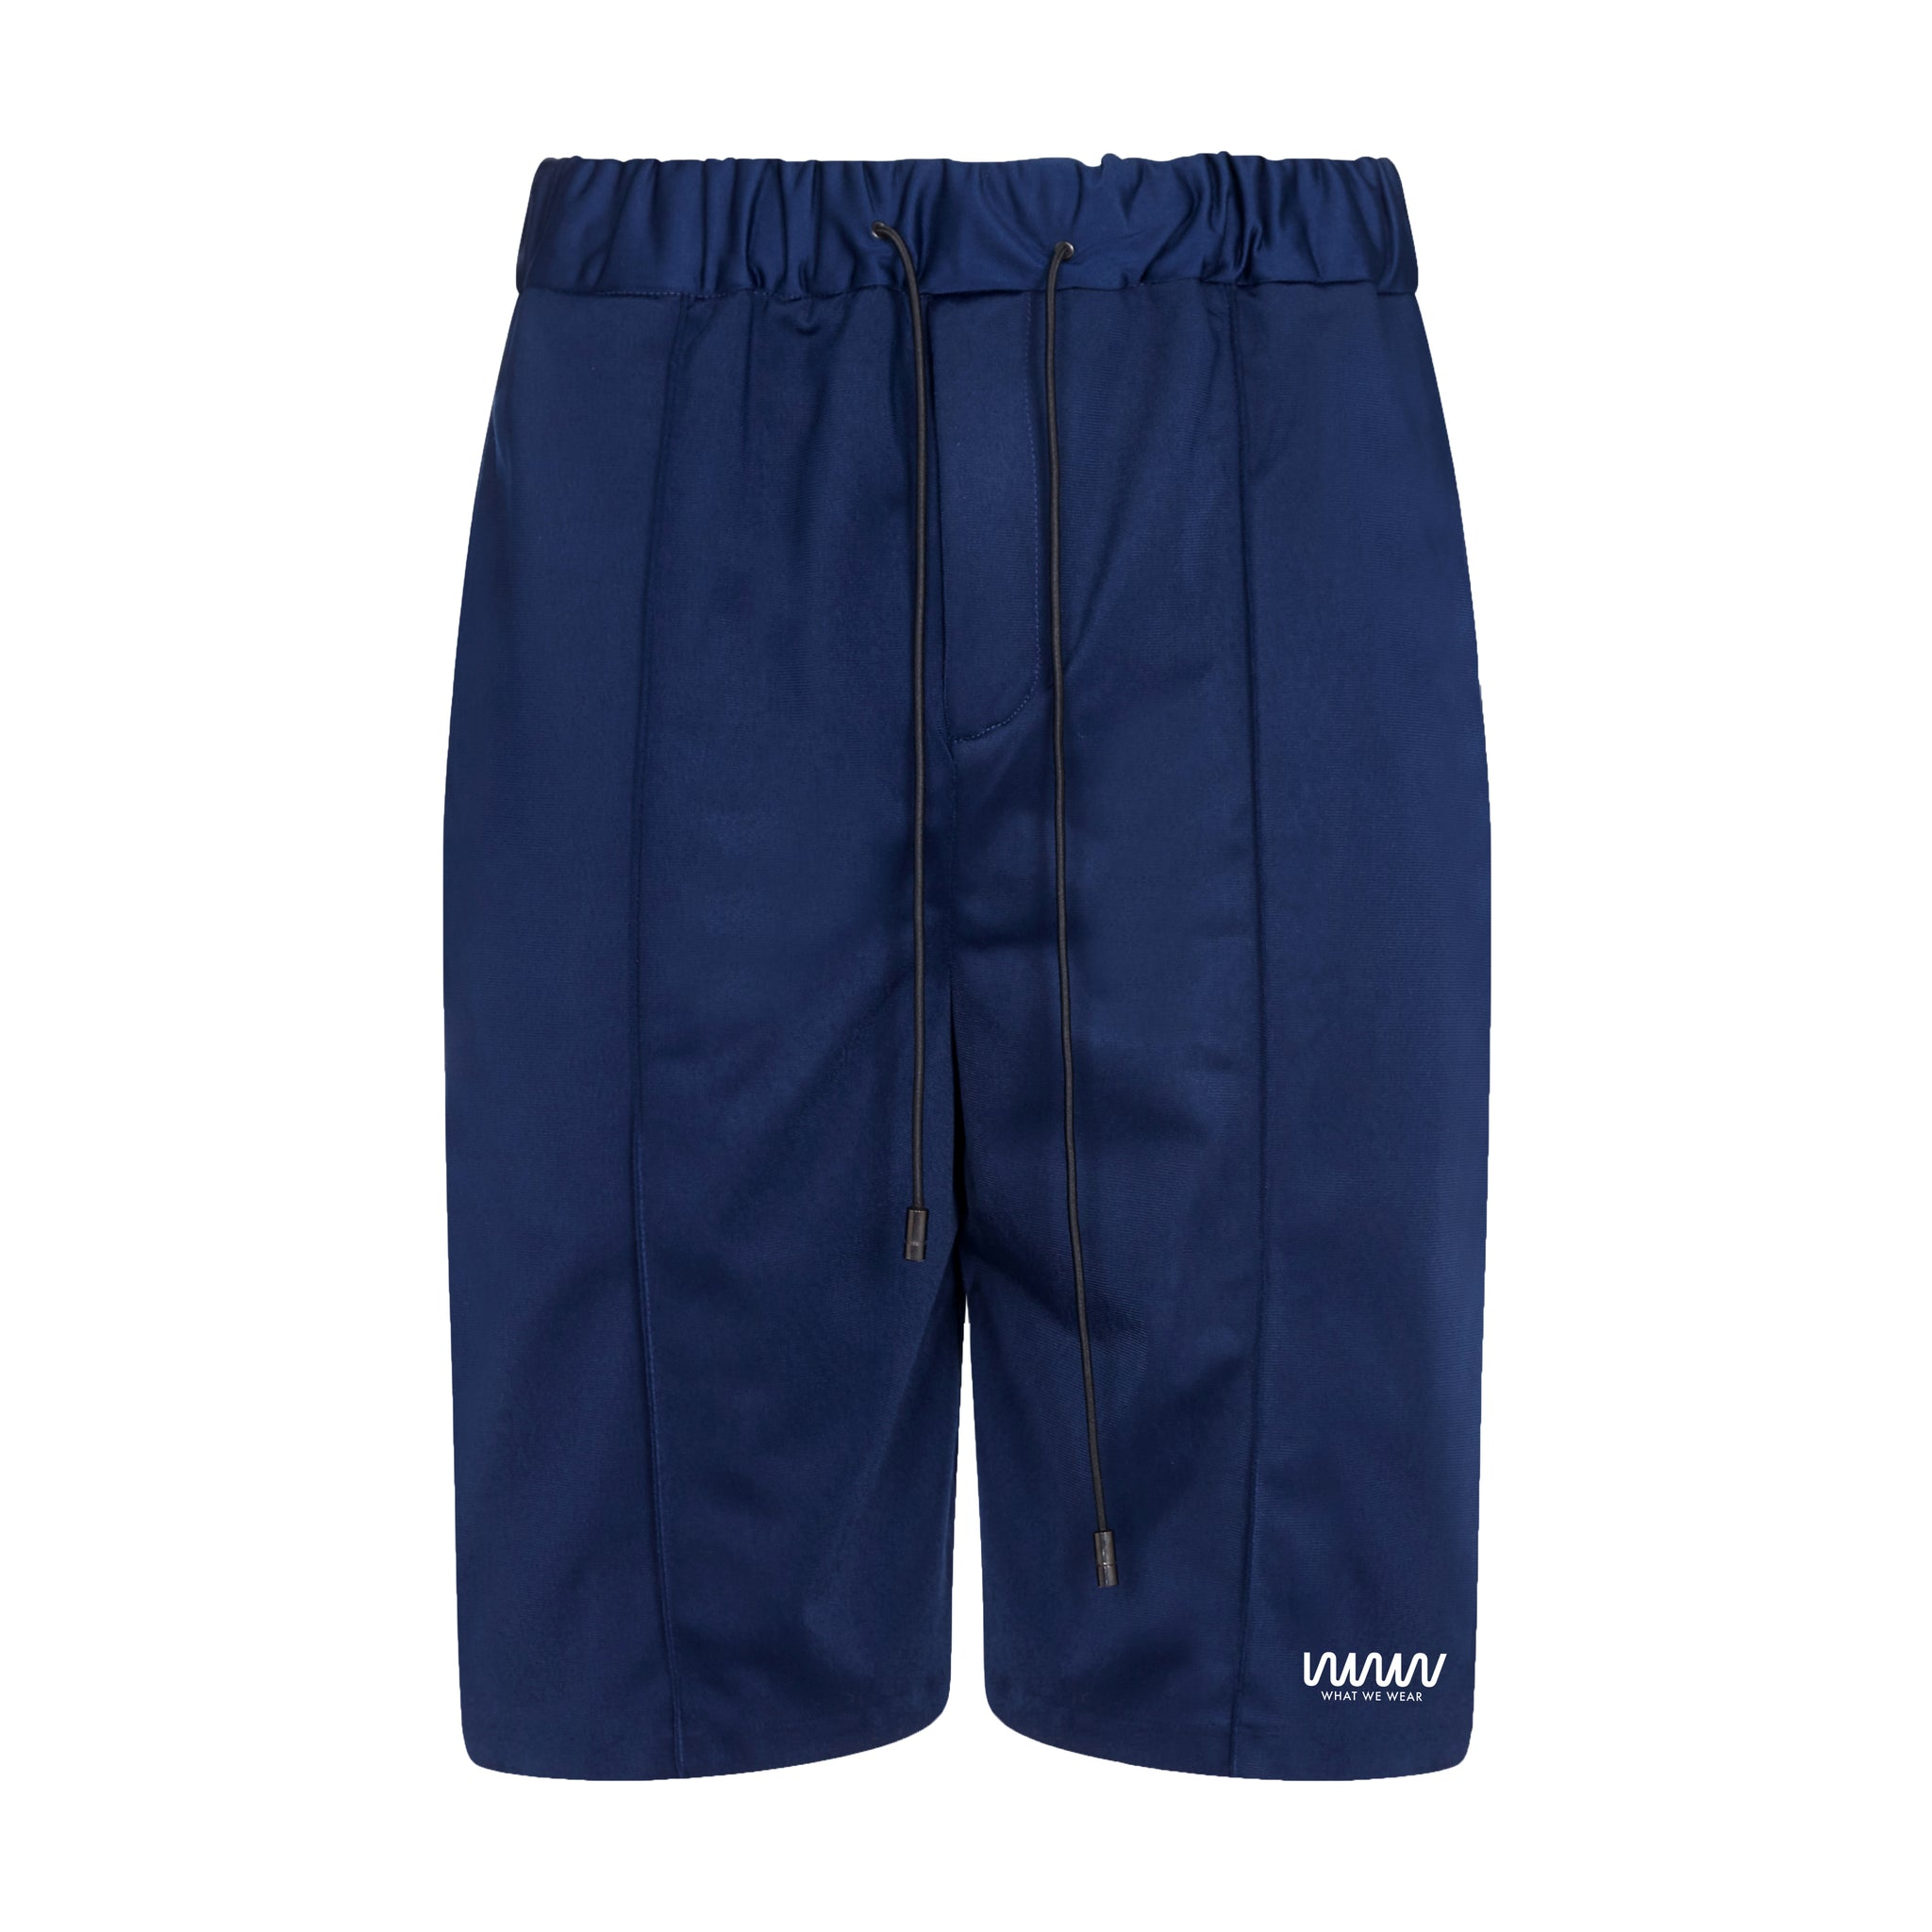 Navy Jersey Pintuck Shorts